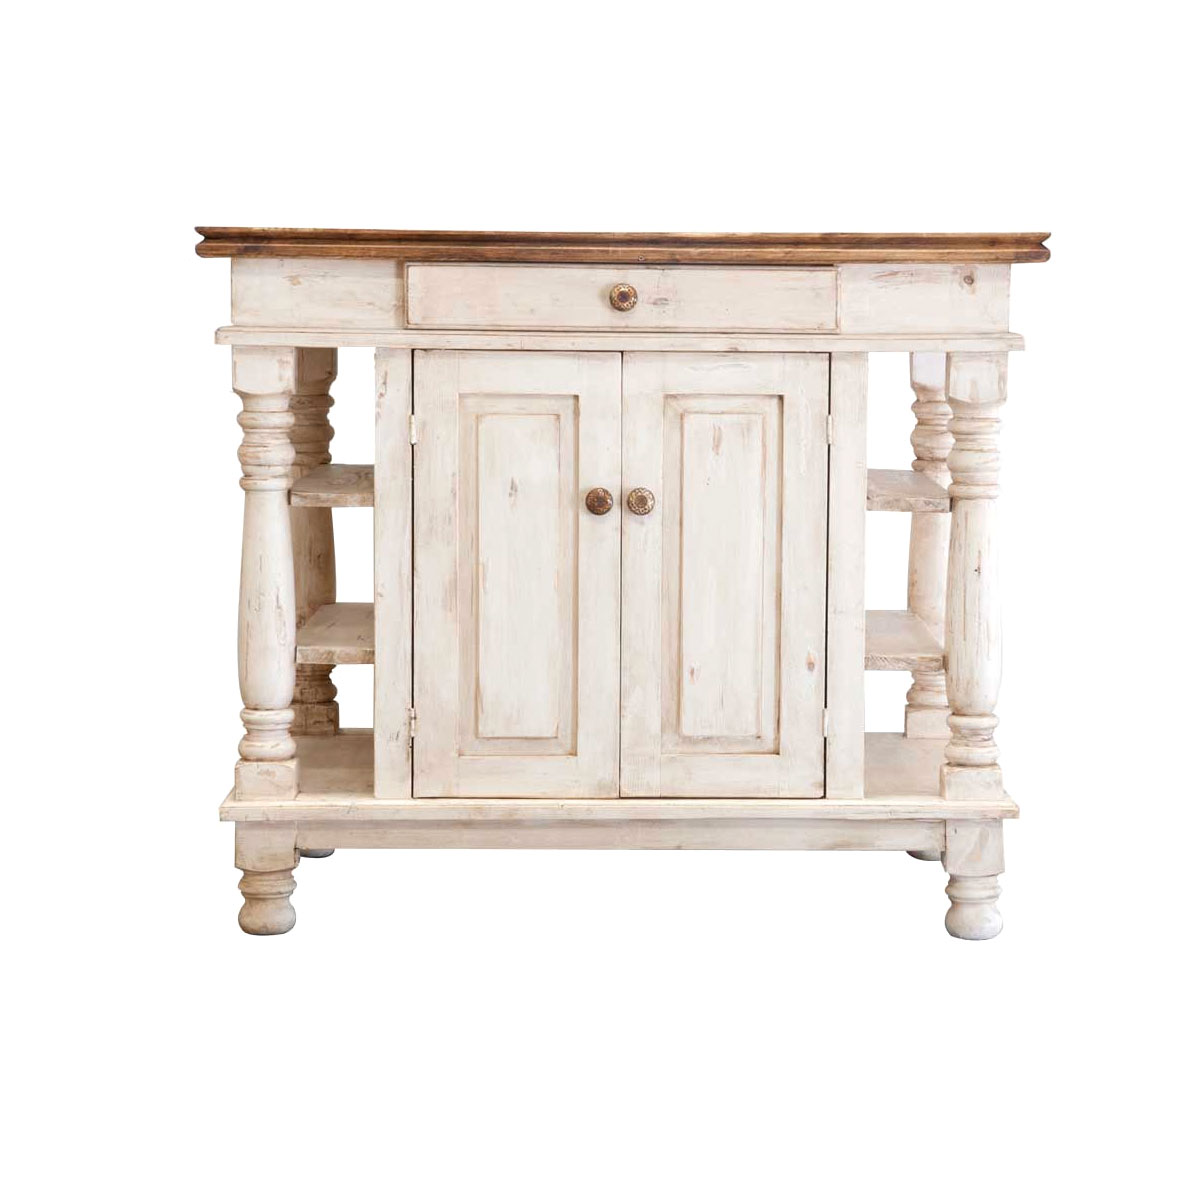 Order Maritime Rustic Kitchen Island line